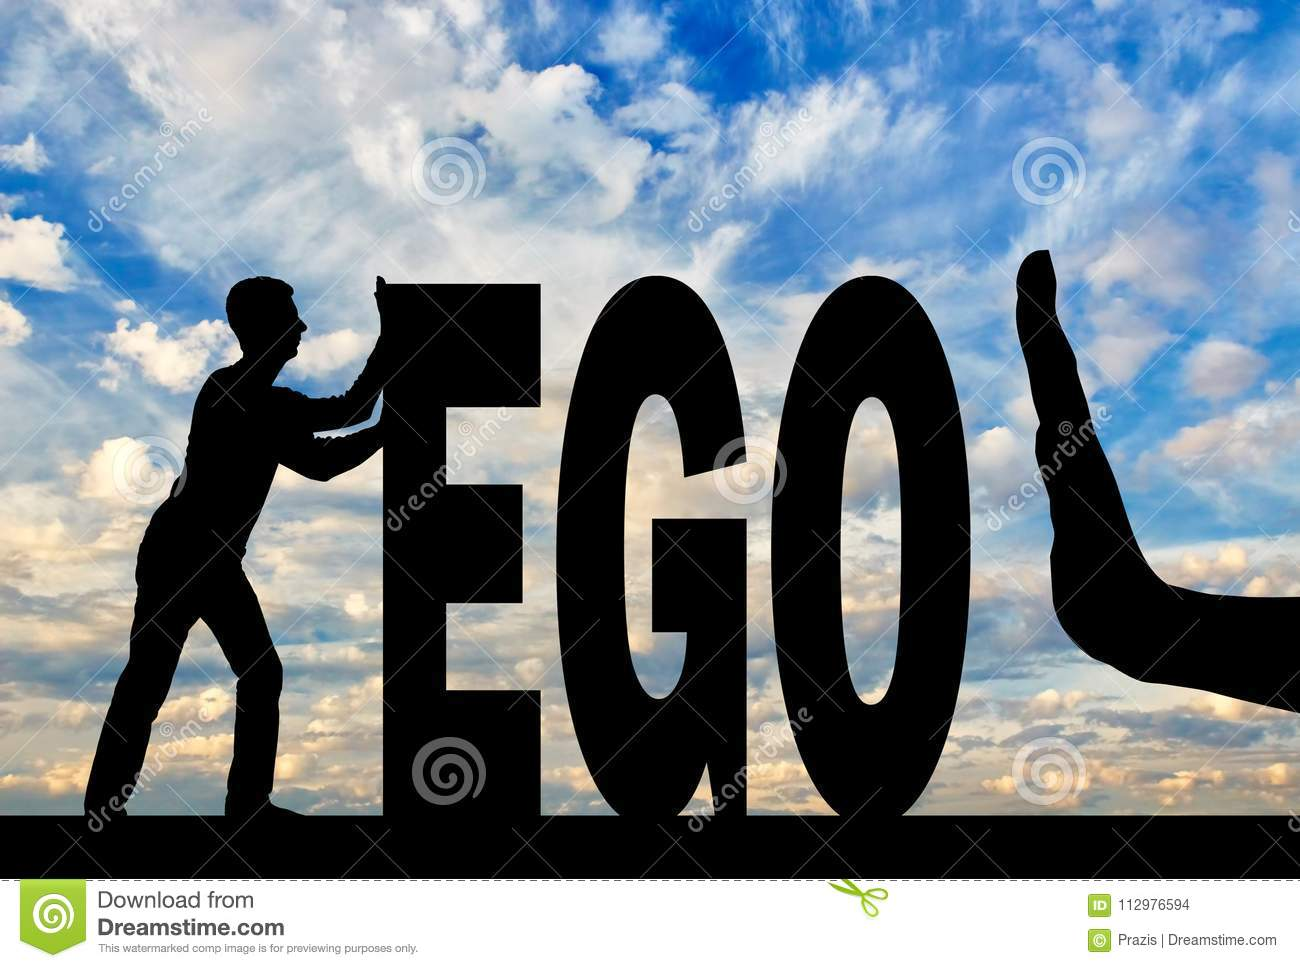 Gesture of the hand stop and silhouette of the man pushing the word ego